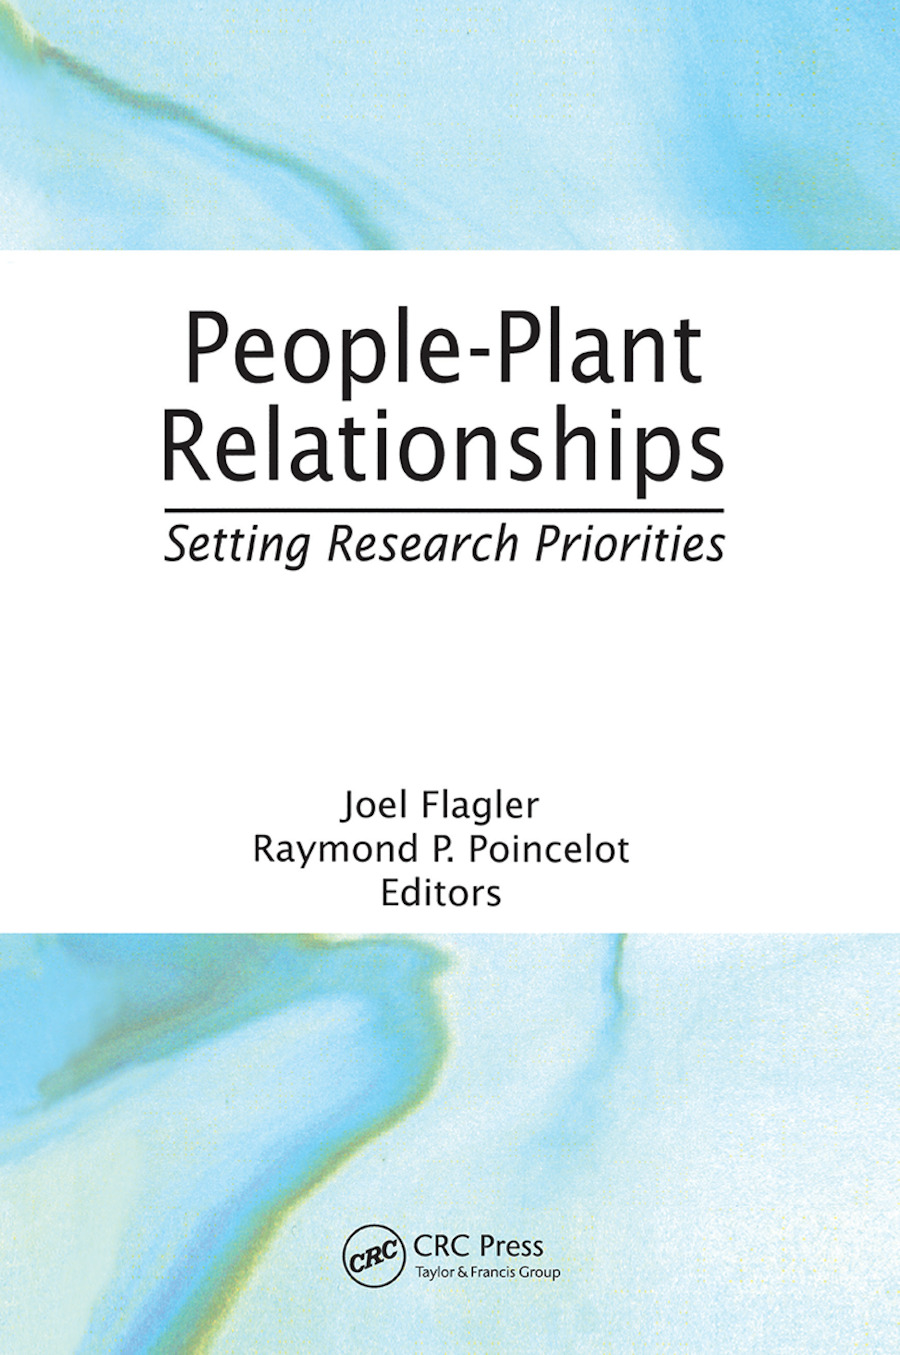 People-Plant Relationships